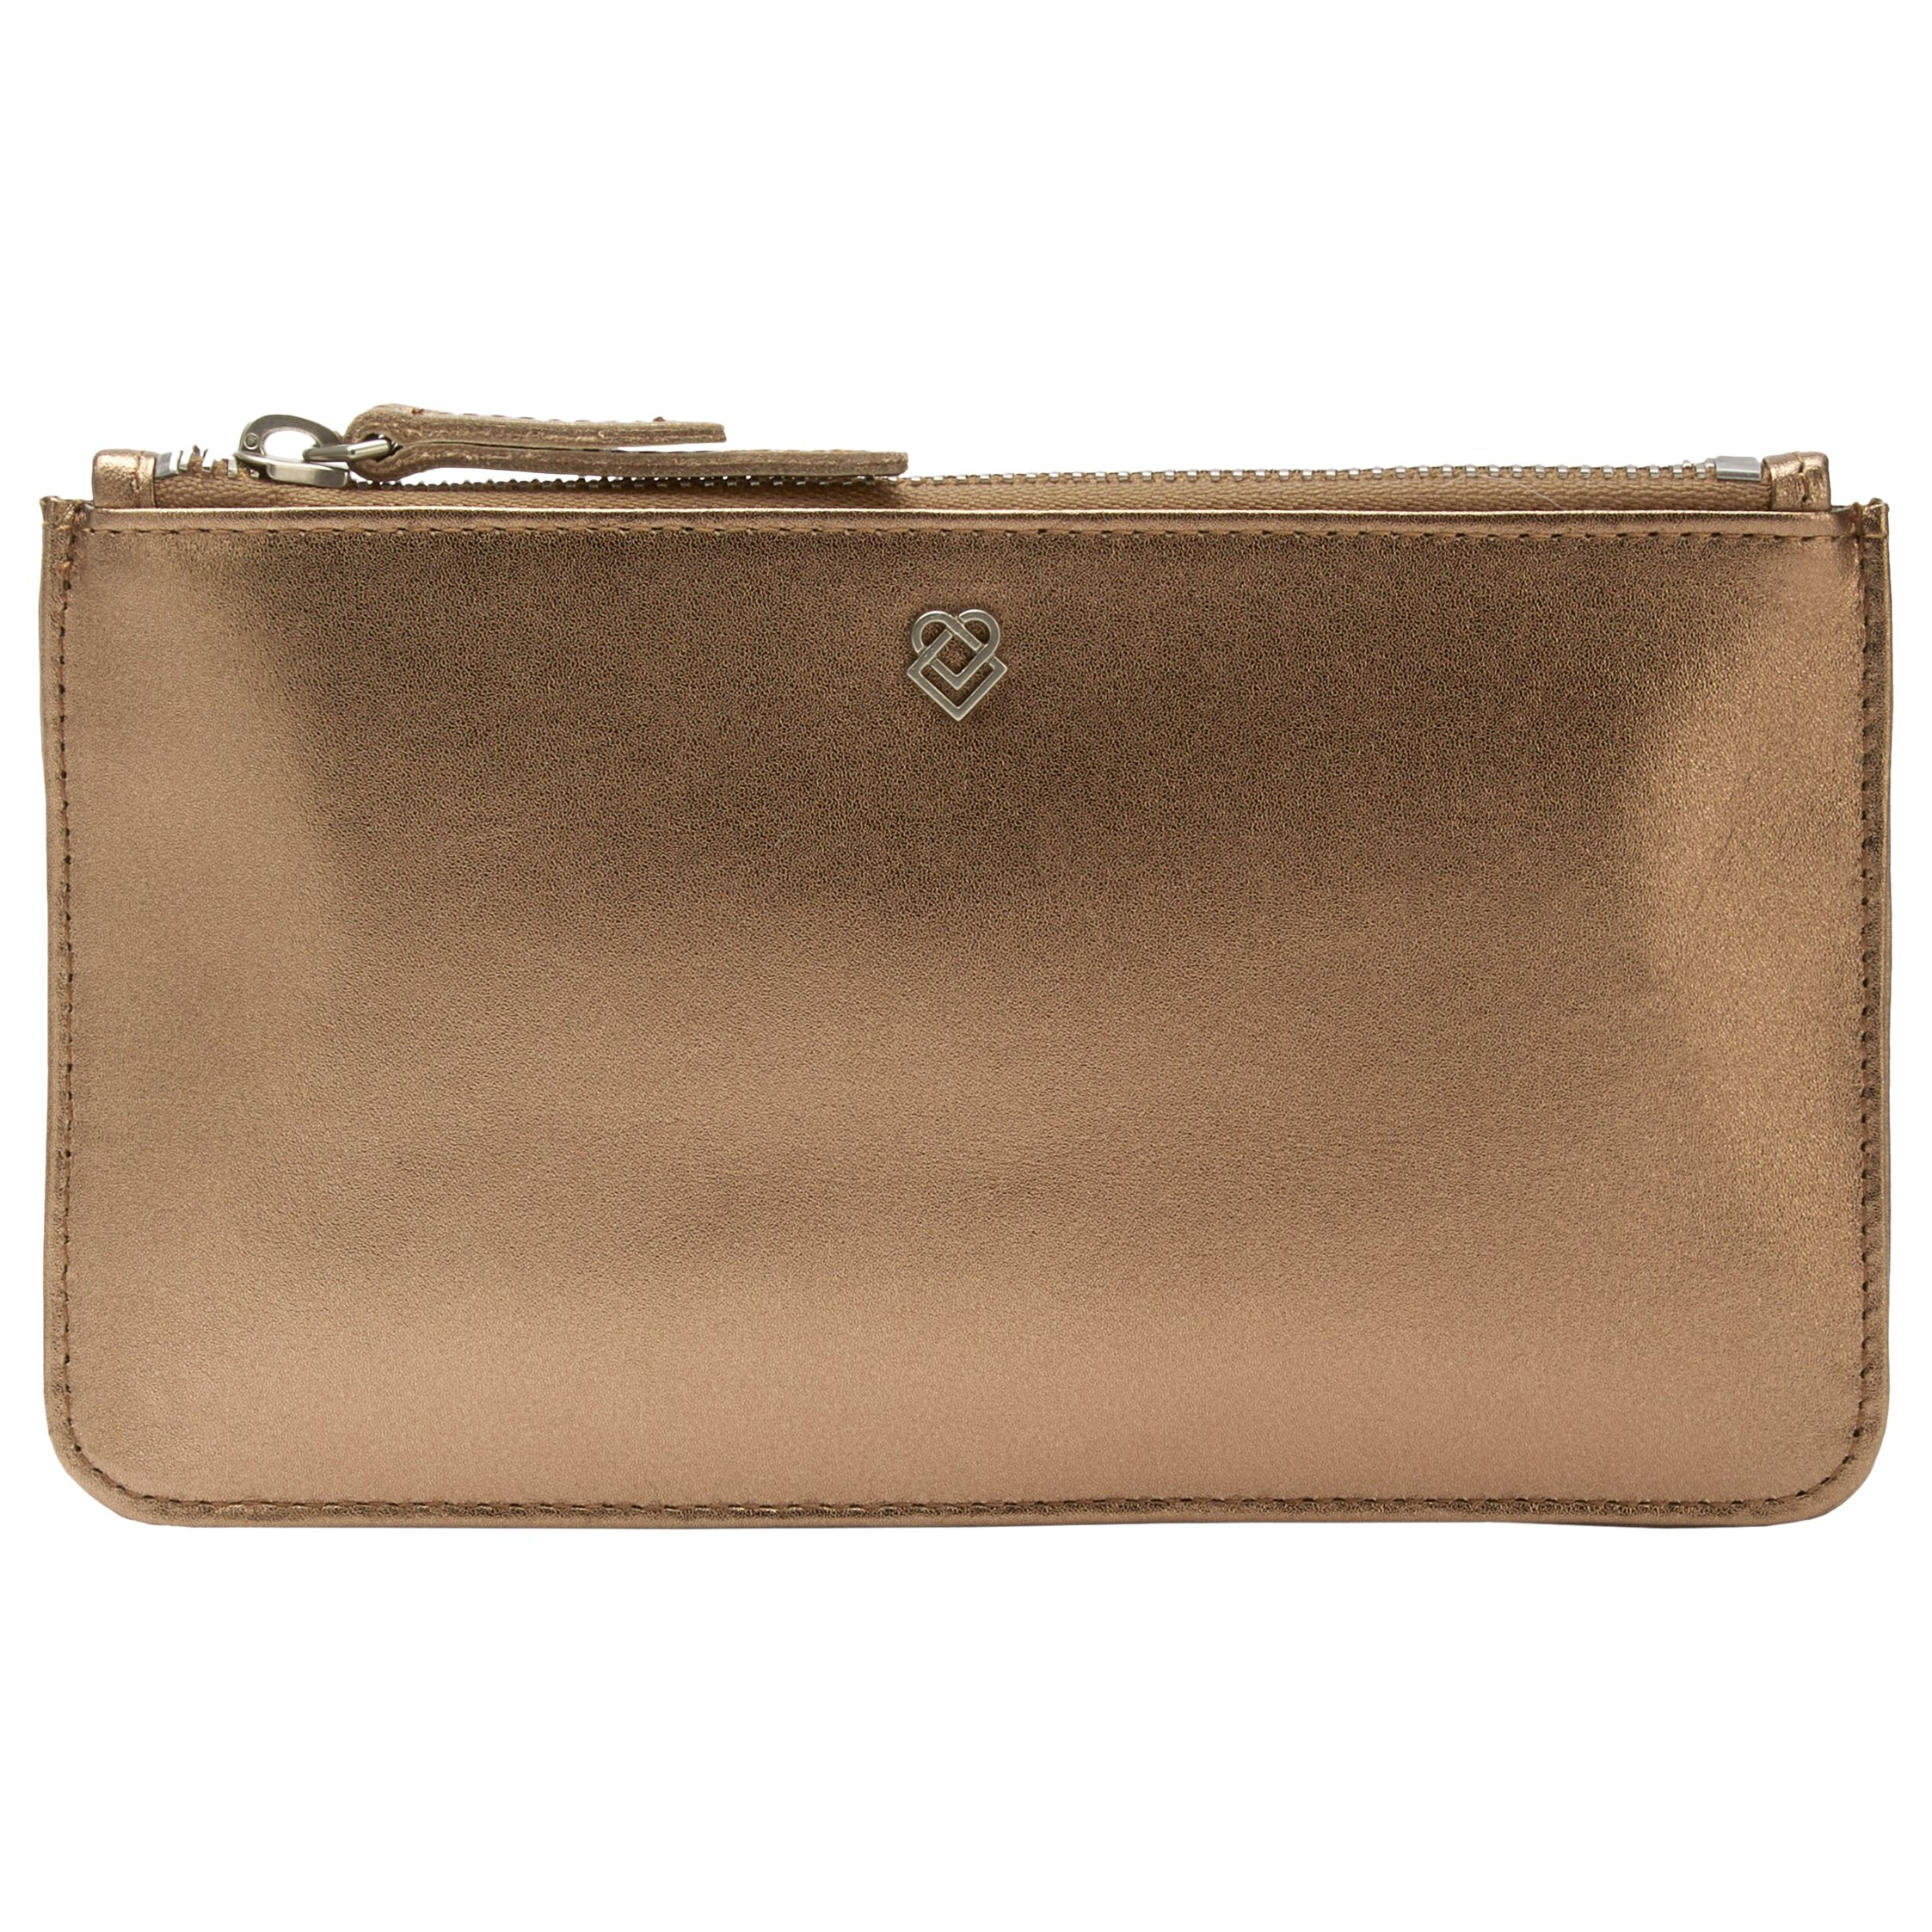 Liebeskind Liebeskind Rabia Leather Pouch Purse